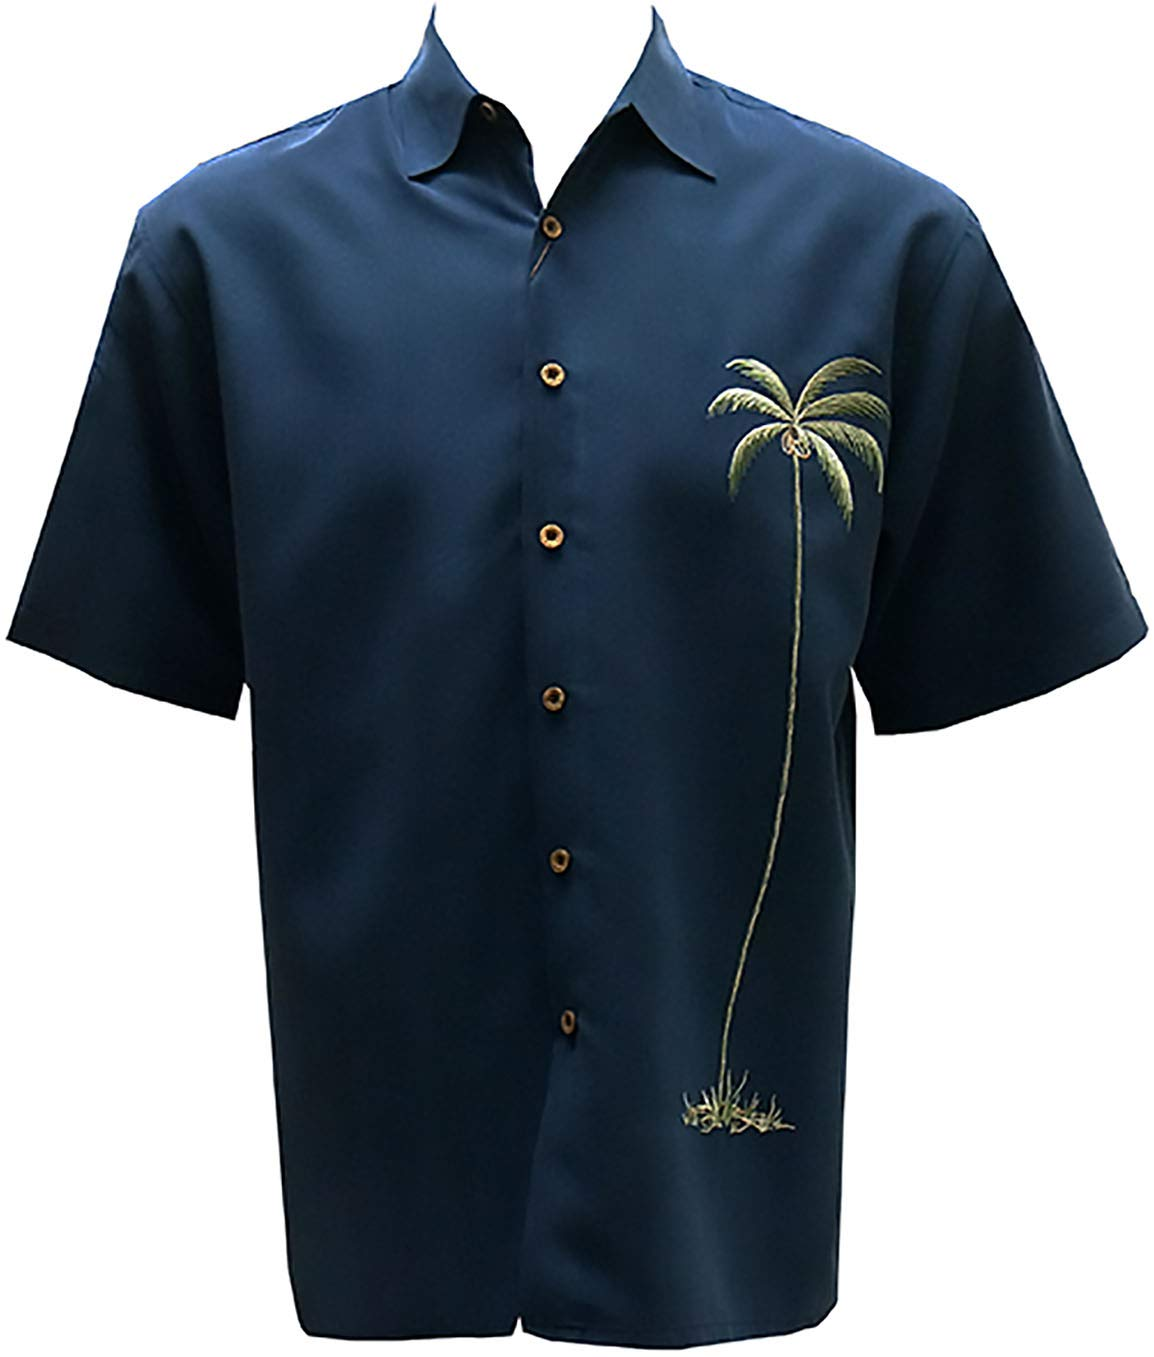 Bamboo Cay Mens Short Sleeve Single Palm Casual Embroidered Woven Shirt